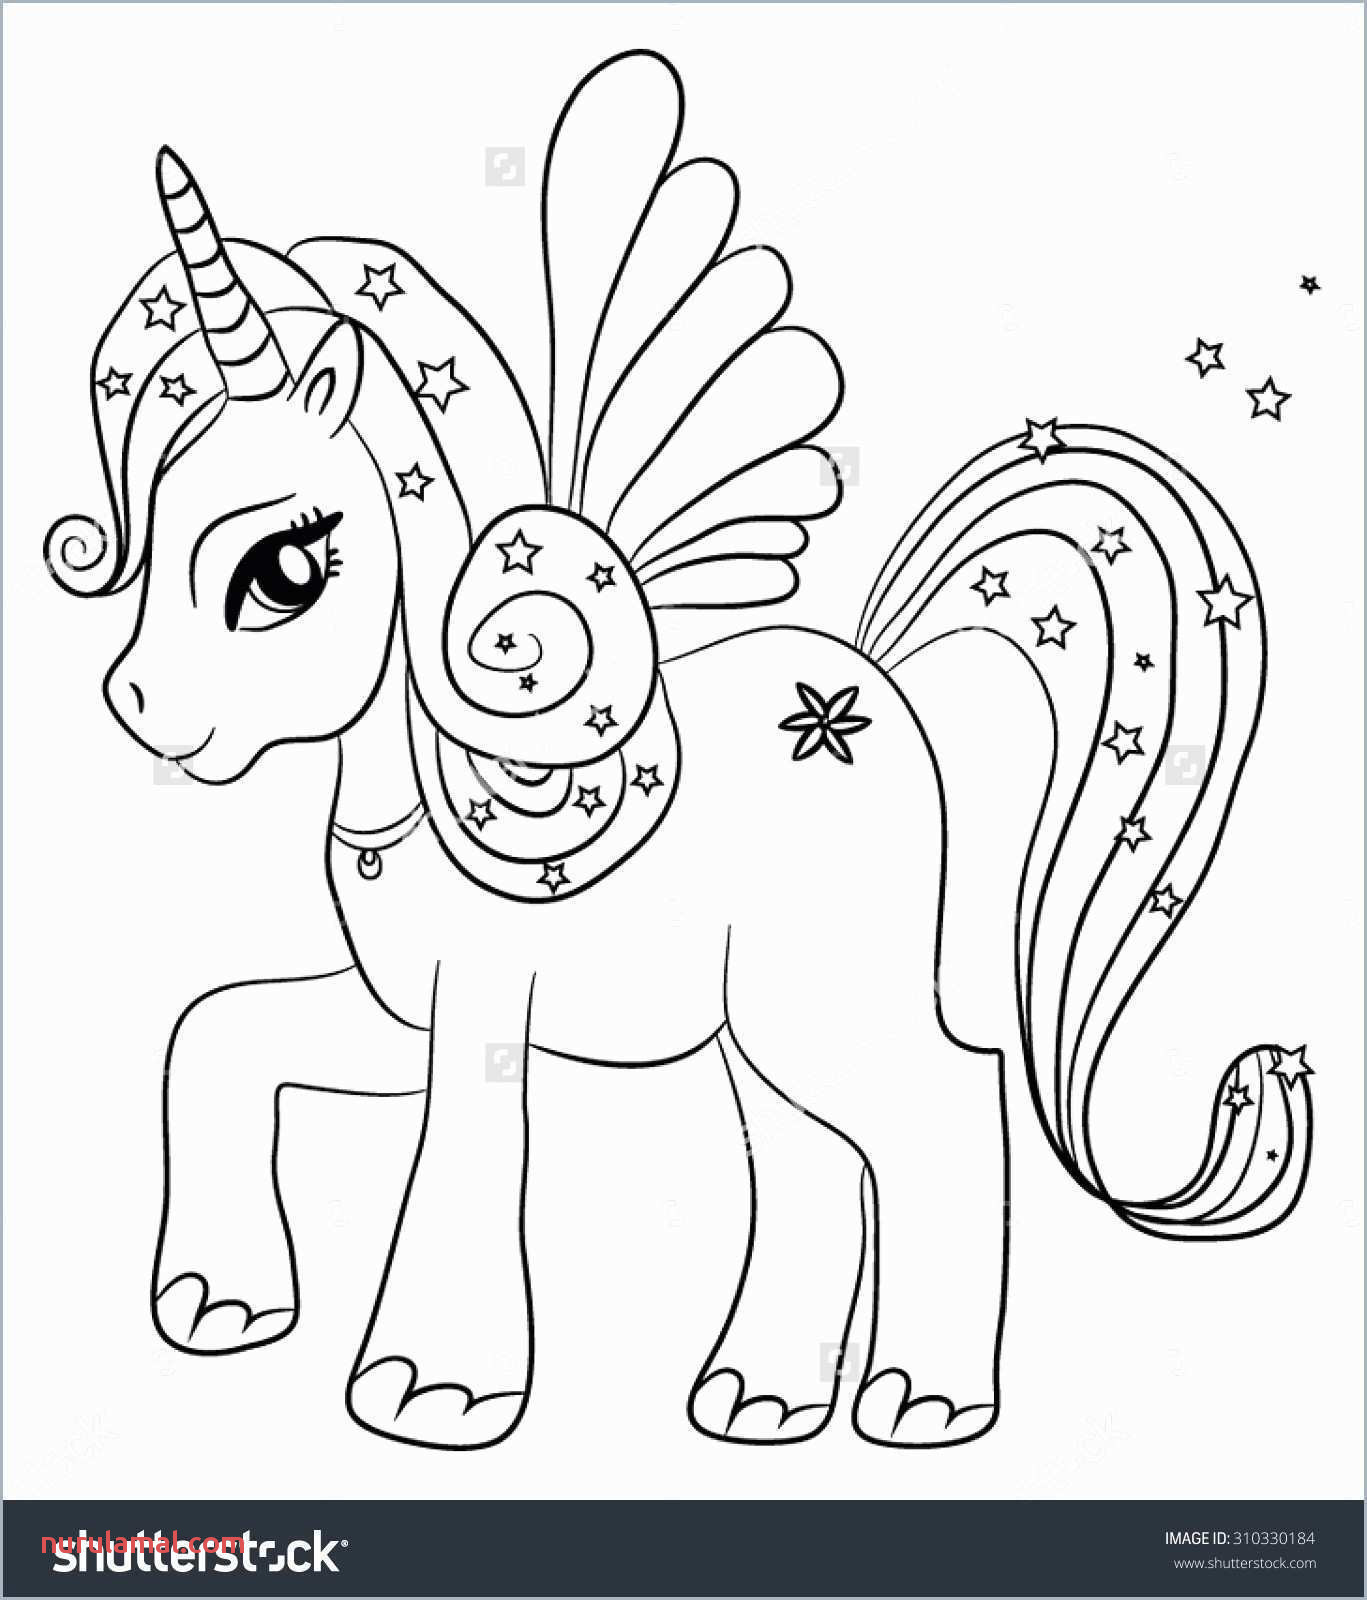 coloring book unicorn fairy worksheets for kindergarten free with printable to print sight word activities sentences alphabet tracing thanksgiving printables pre words winter